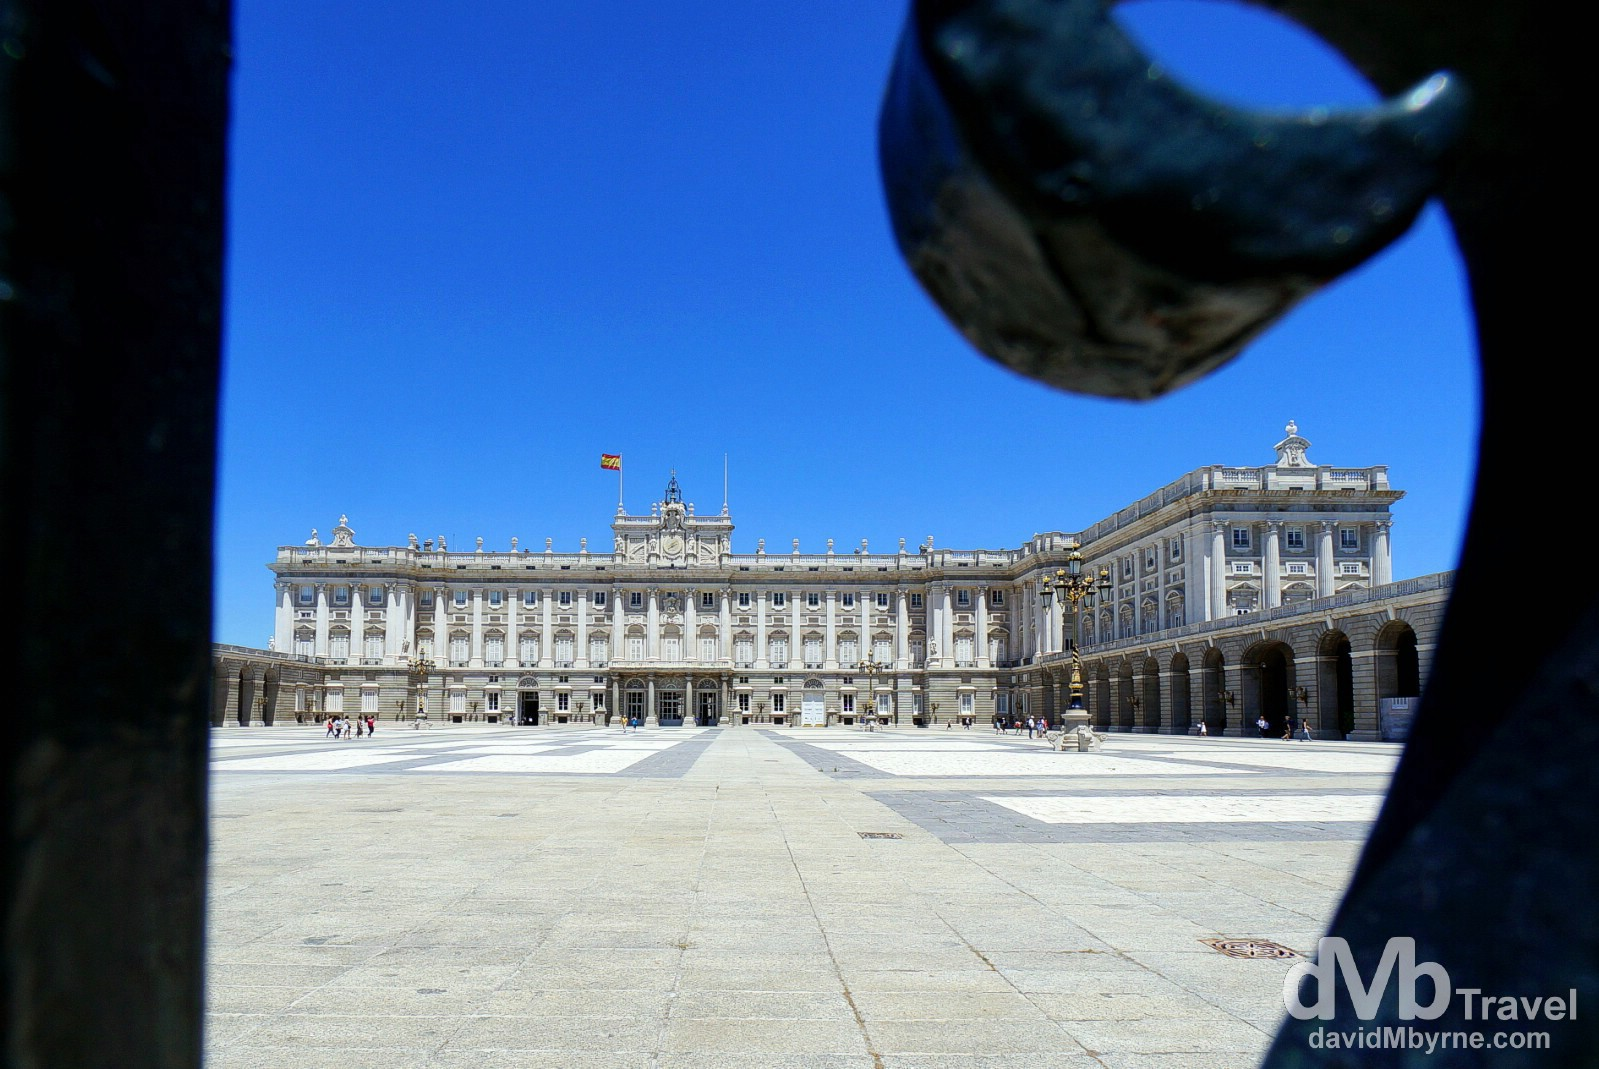 A section of the Palacio Real (the Royal Palace) as seen through railings in Madrid, Spain. June 15th, 2014.